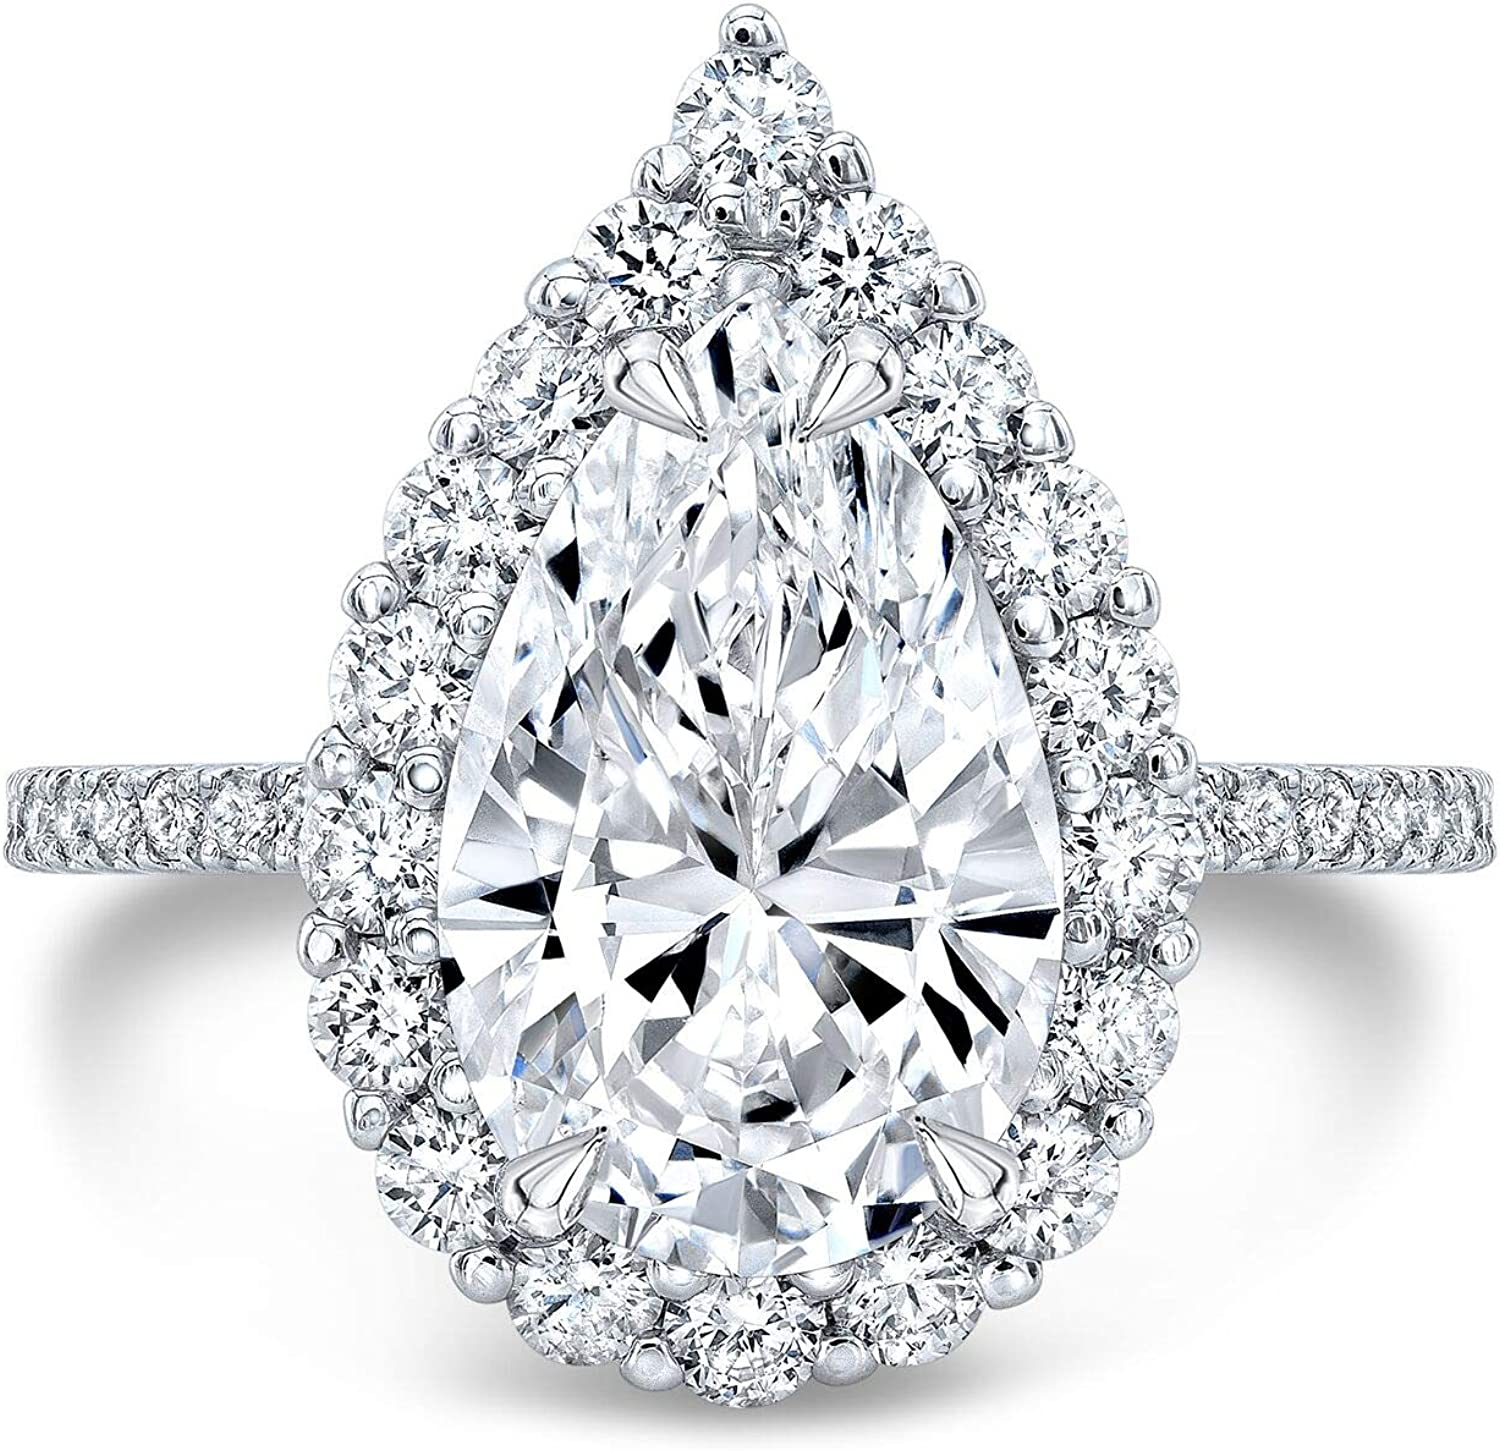 Bhumi Gems 4CT Pear Cut Wom Engagement Moissanite Colorless Soldering Ring Super popular specialty store